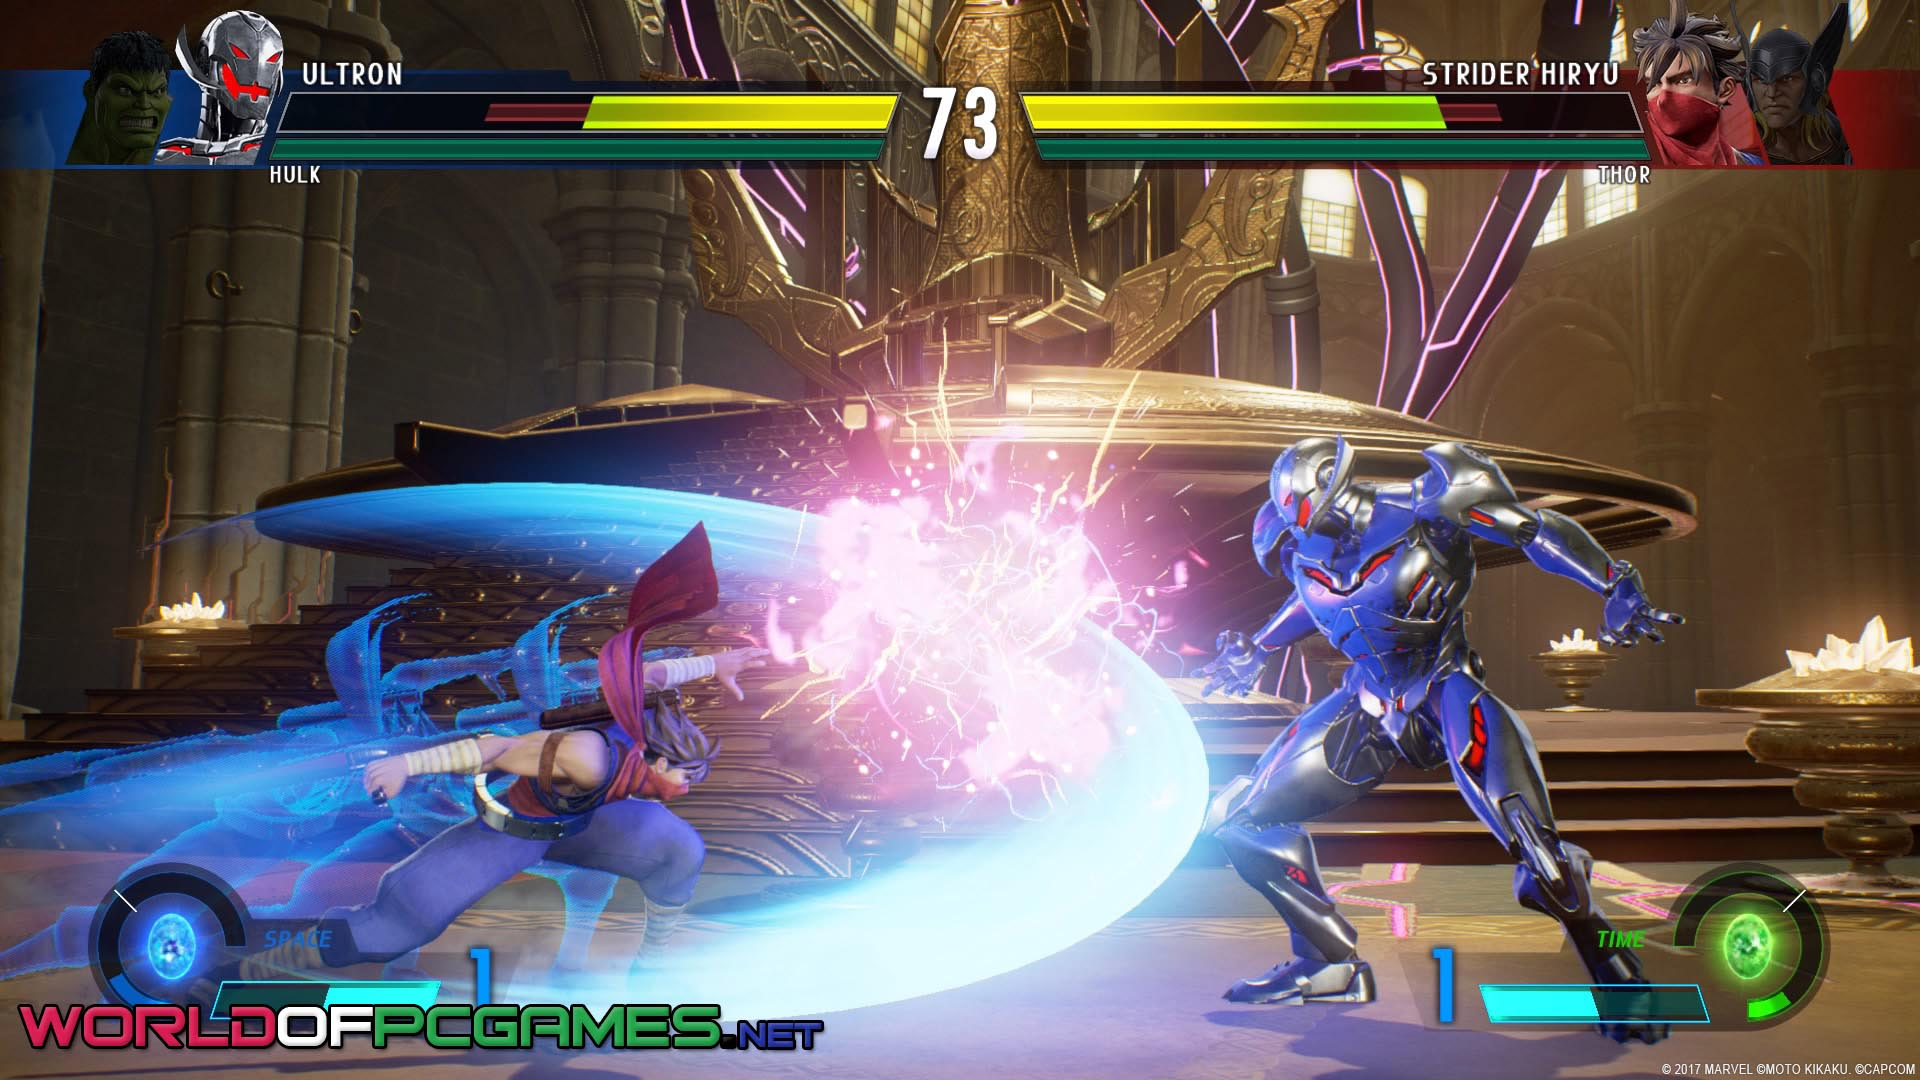 marvel vs capcom infinite Free Download By Worldofpcgames.net 3 - Marvel Vs Capcom Infinite Download Free